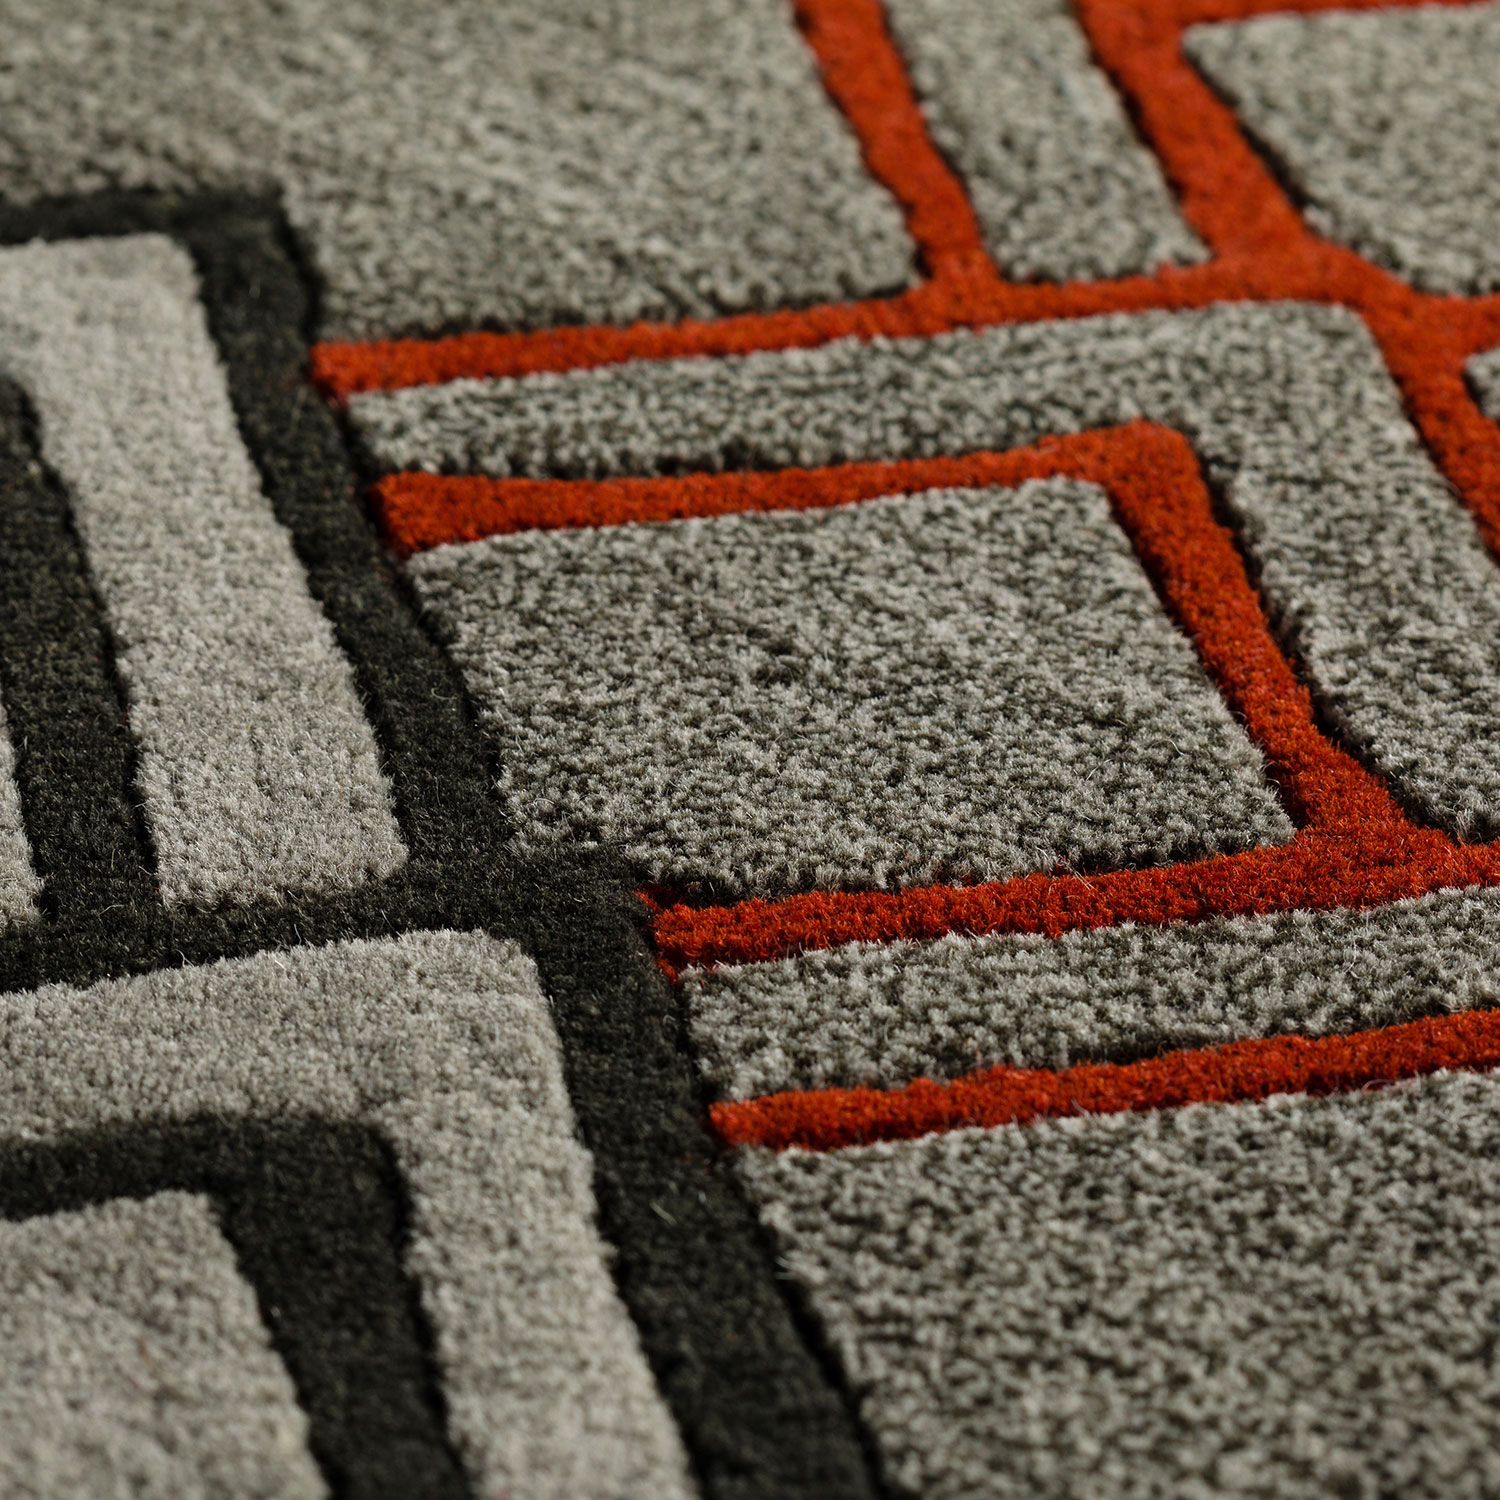 Agra rug closeup of red black and grey rug